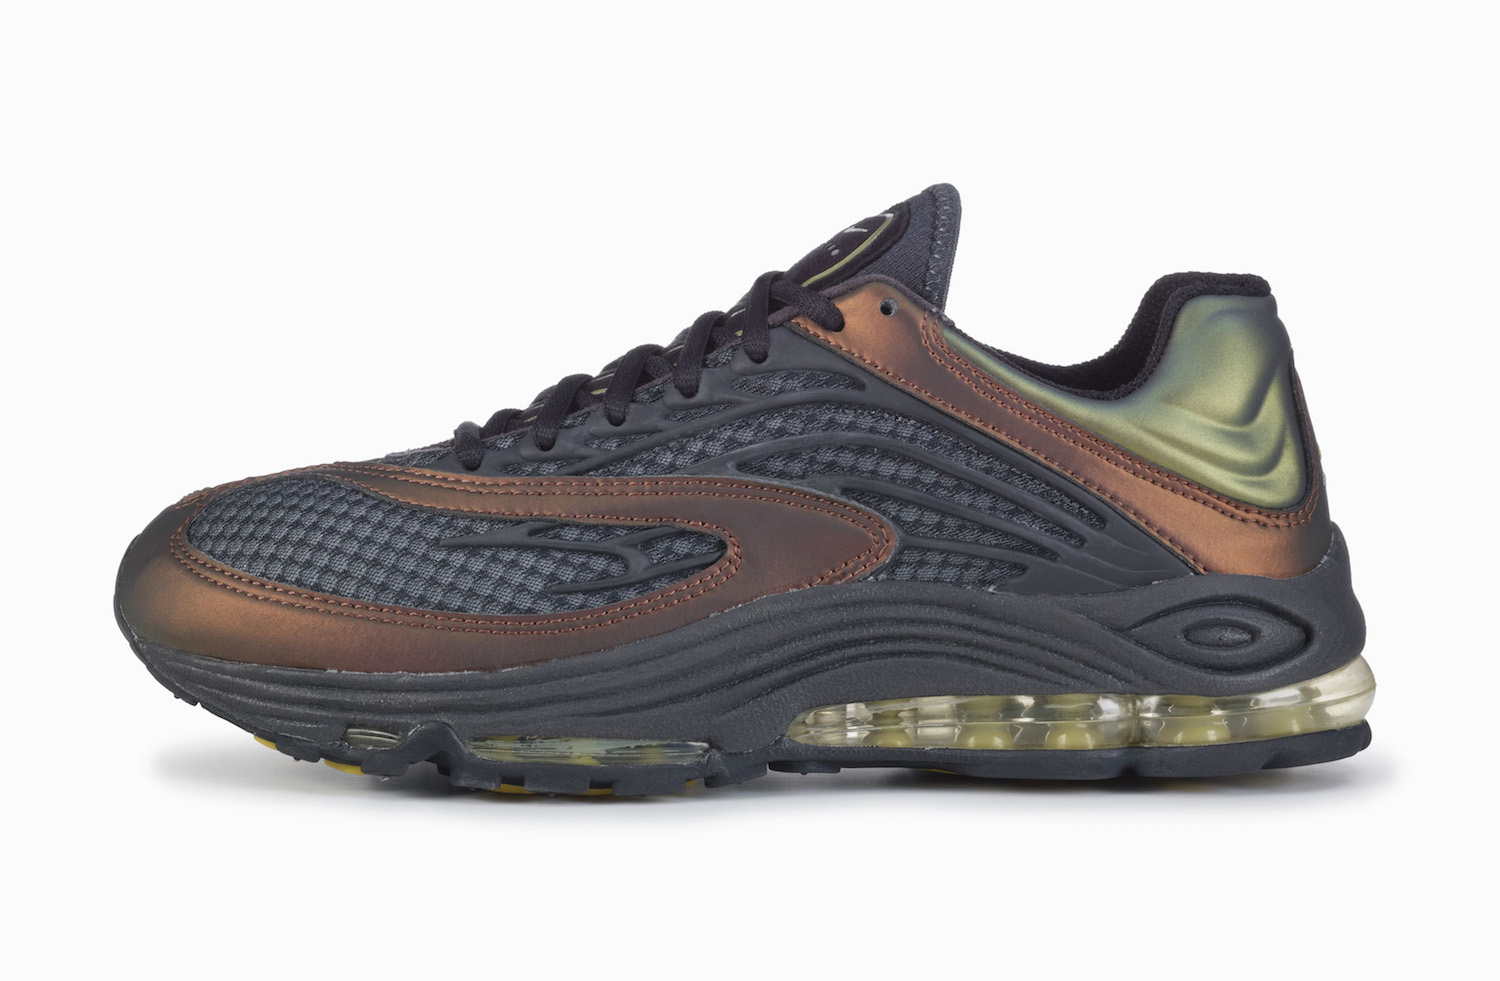 buy online 5a0fe e4b7e The Skepta Air Max 97 Collab is Inspired by Morocco, and the ...